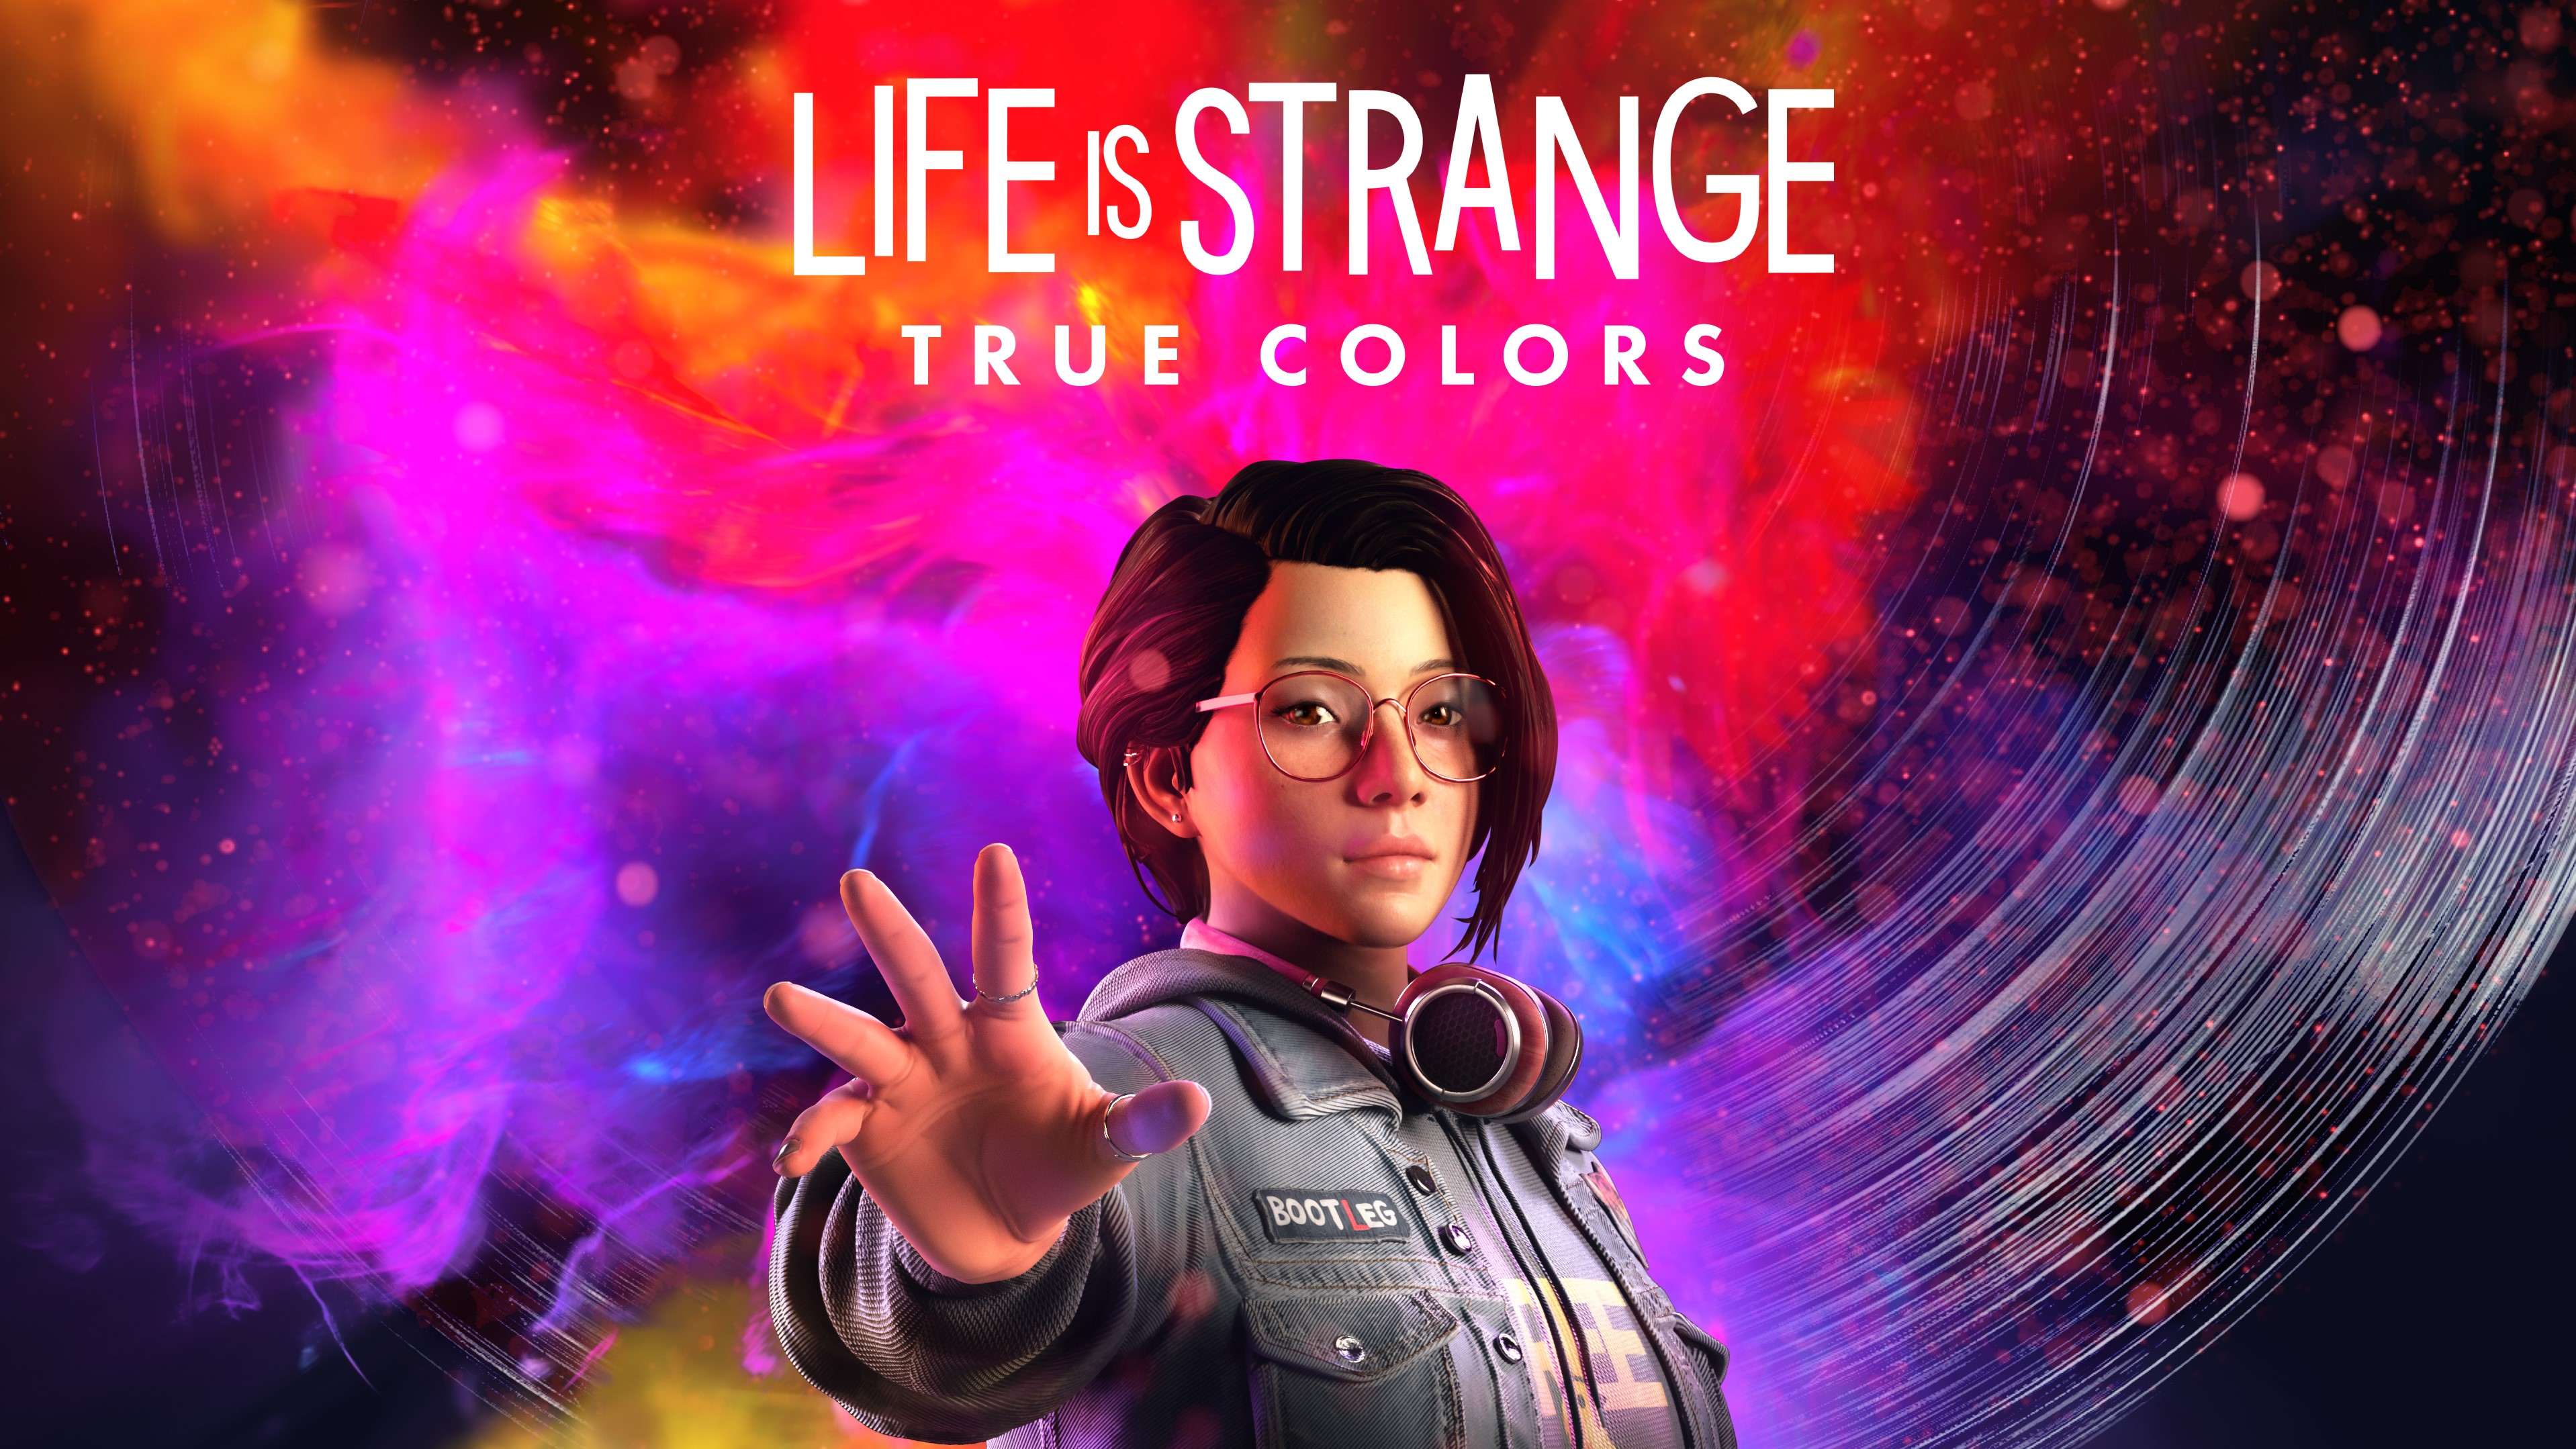 New PS5 games - Life is Strange 3